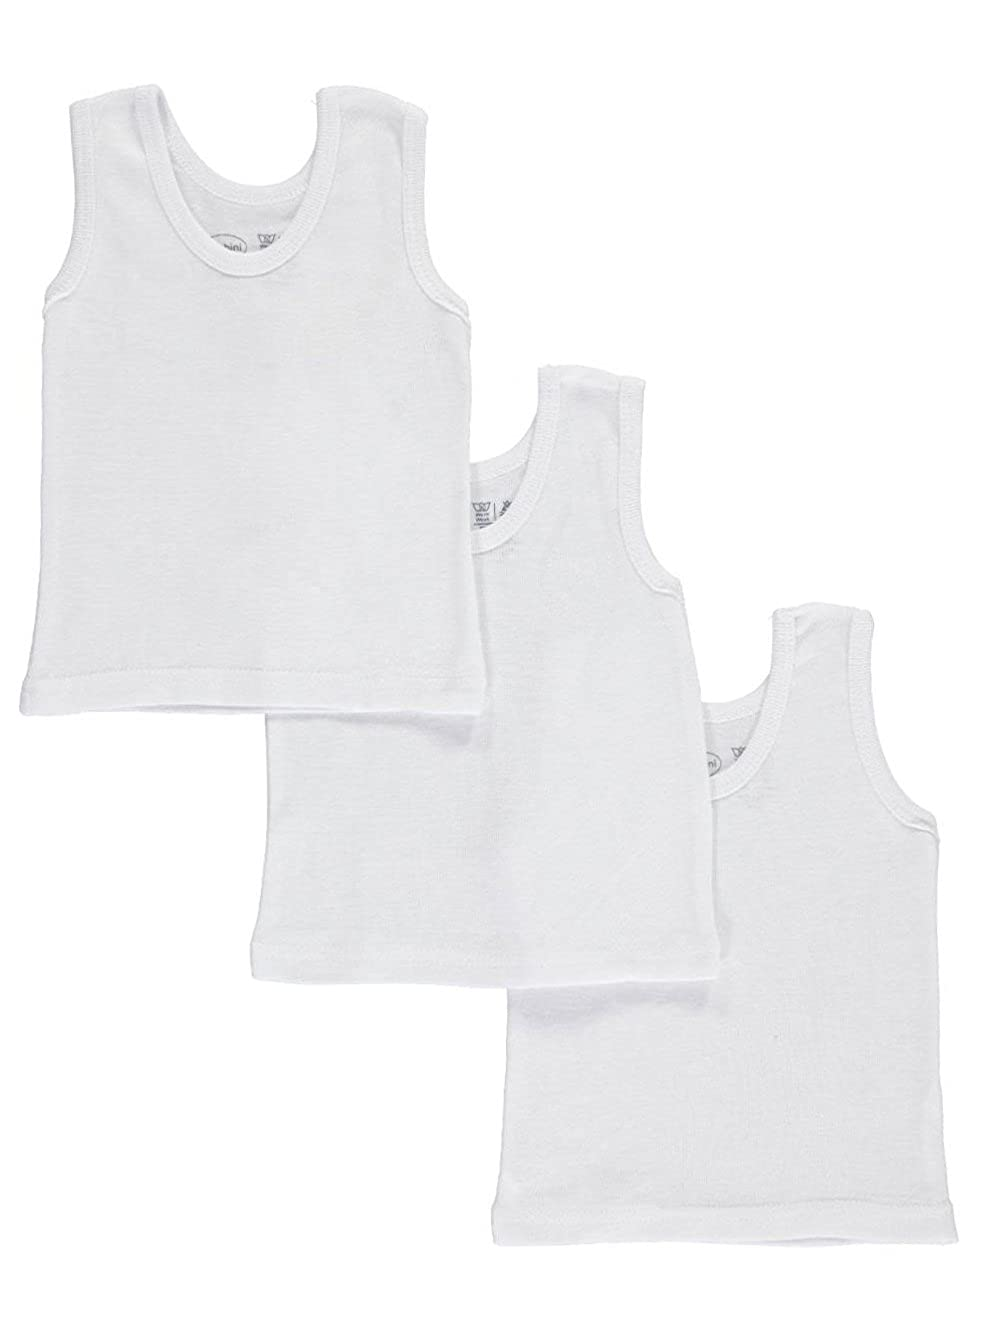 bambini Unisex Baby 3-Pack Tank Tops 6-9 Months